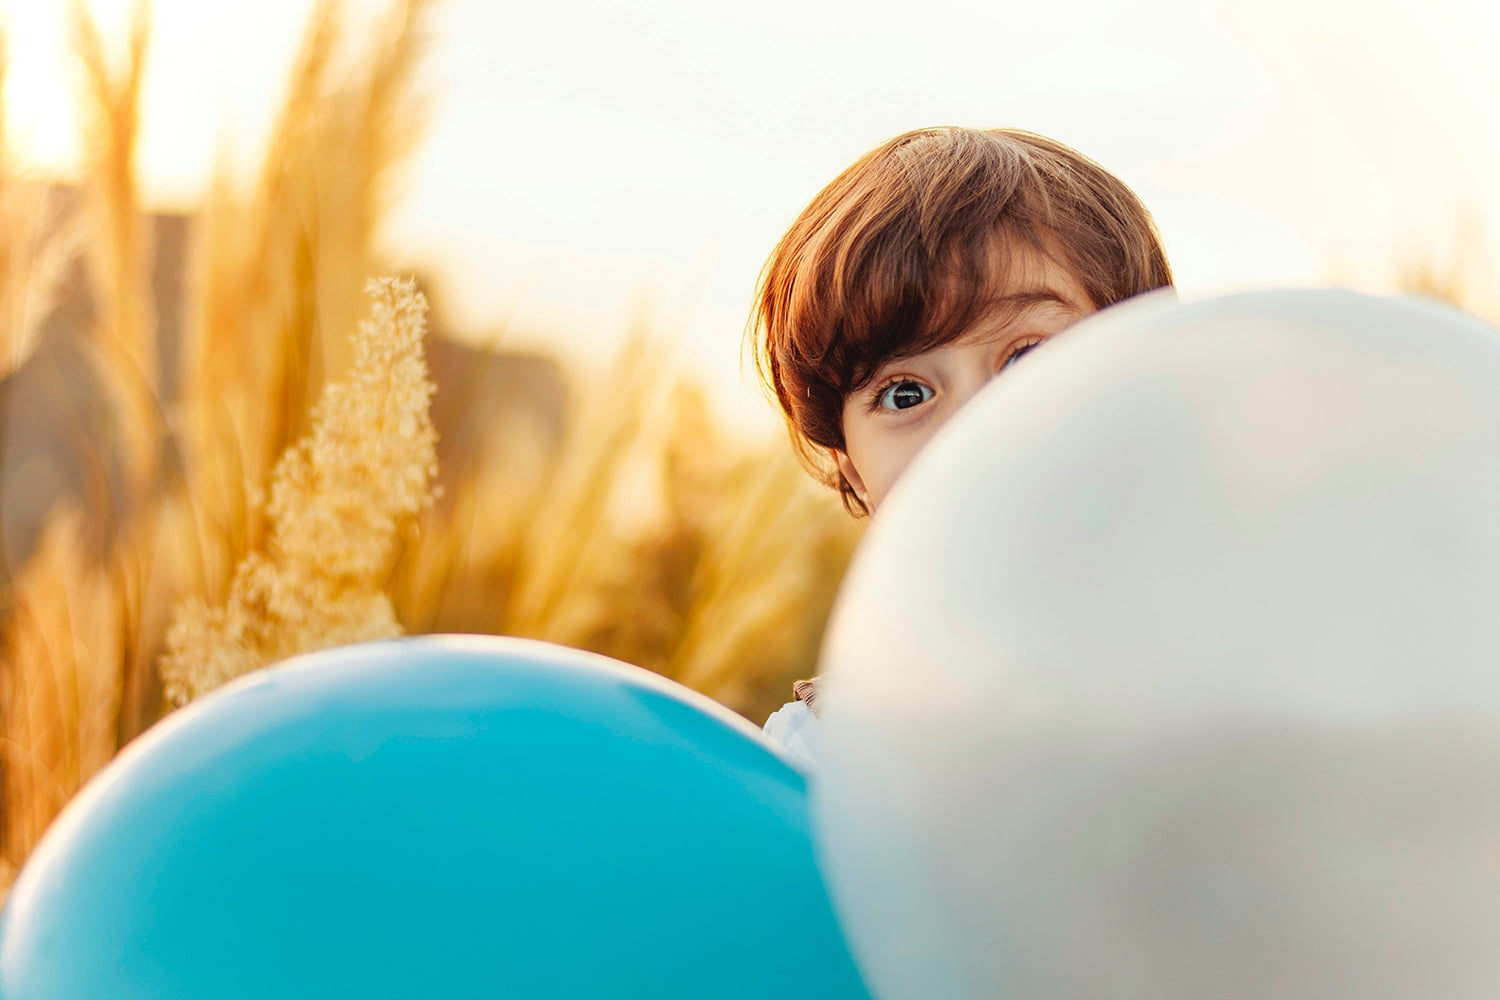 Child Behind Balloons